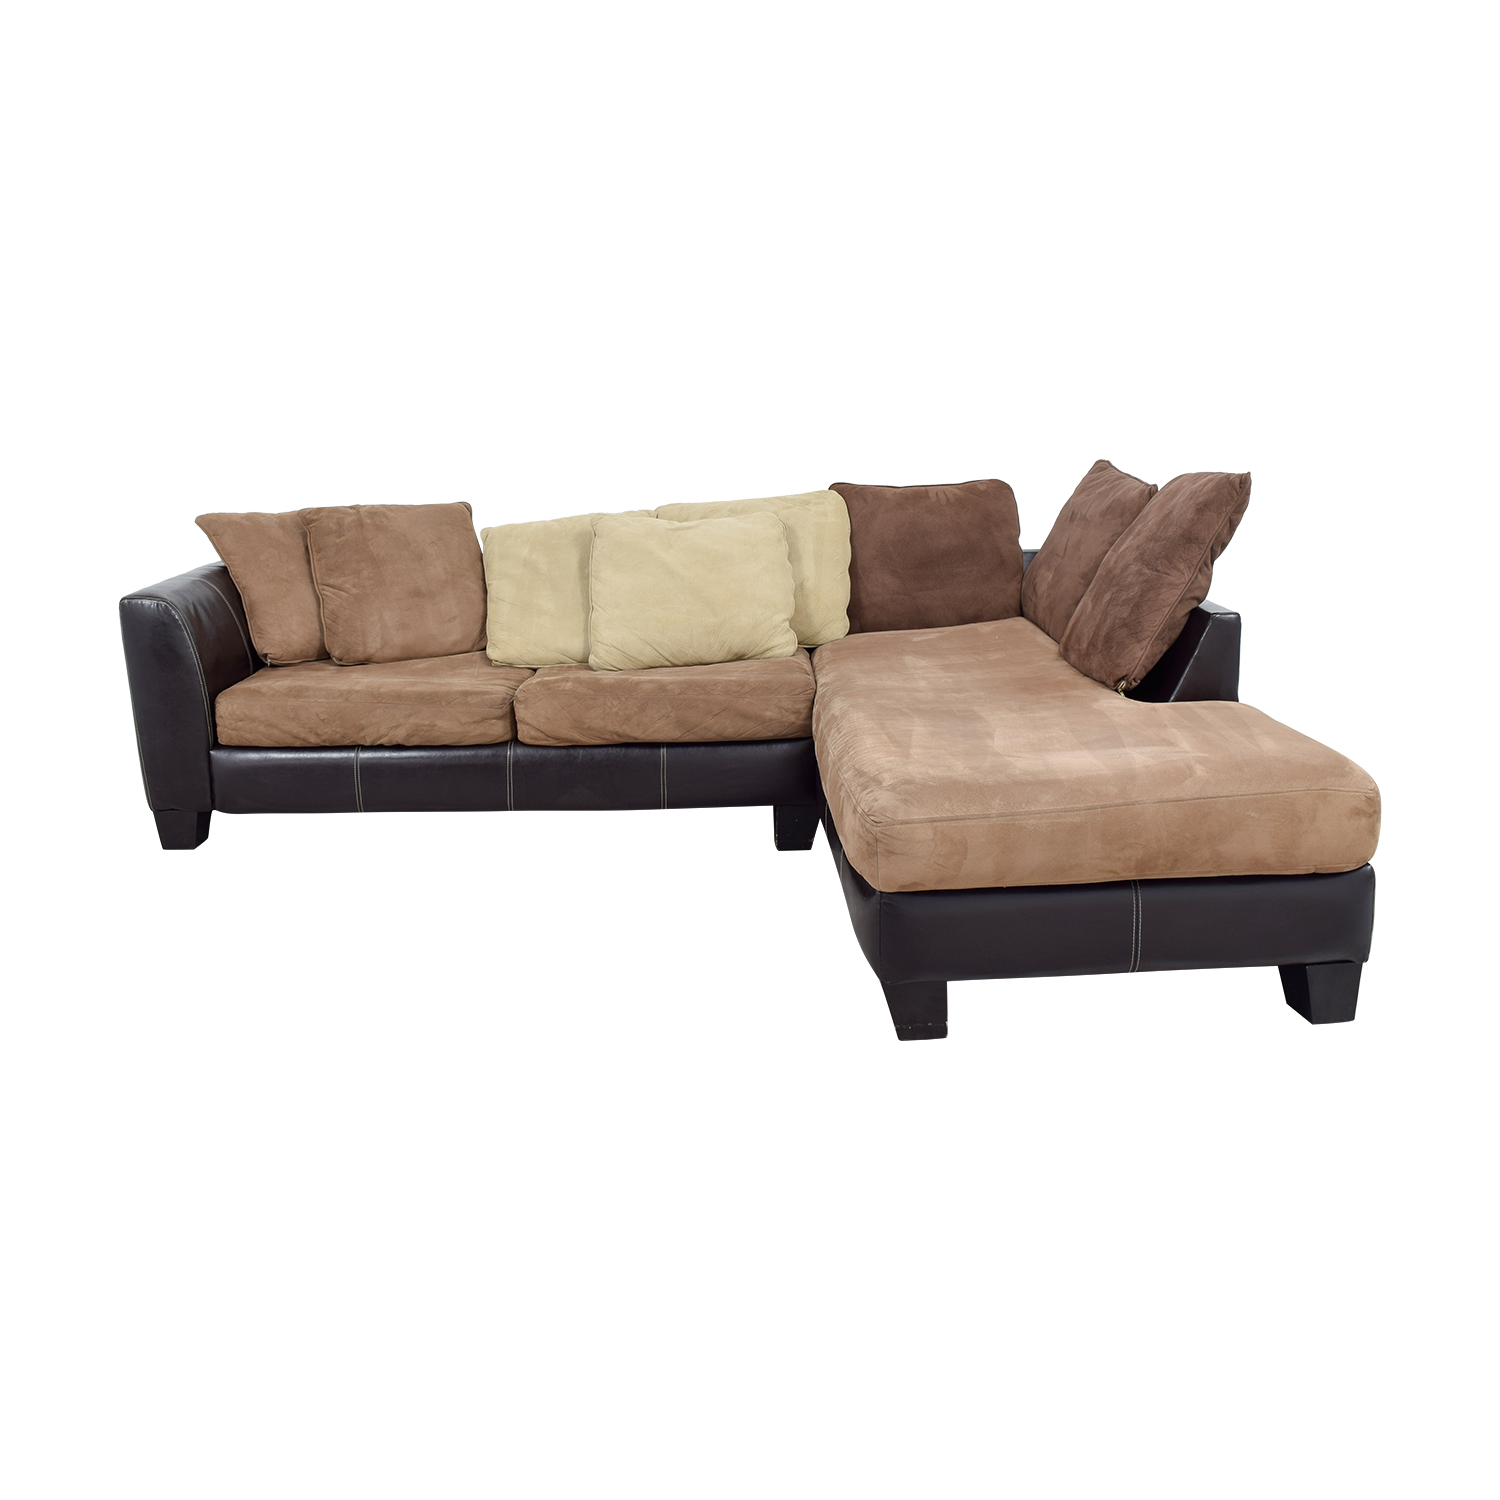 Albany Industries Albany Industries Brown Chaise Sectional with Pillows Sofas